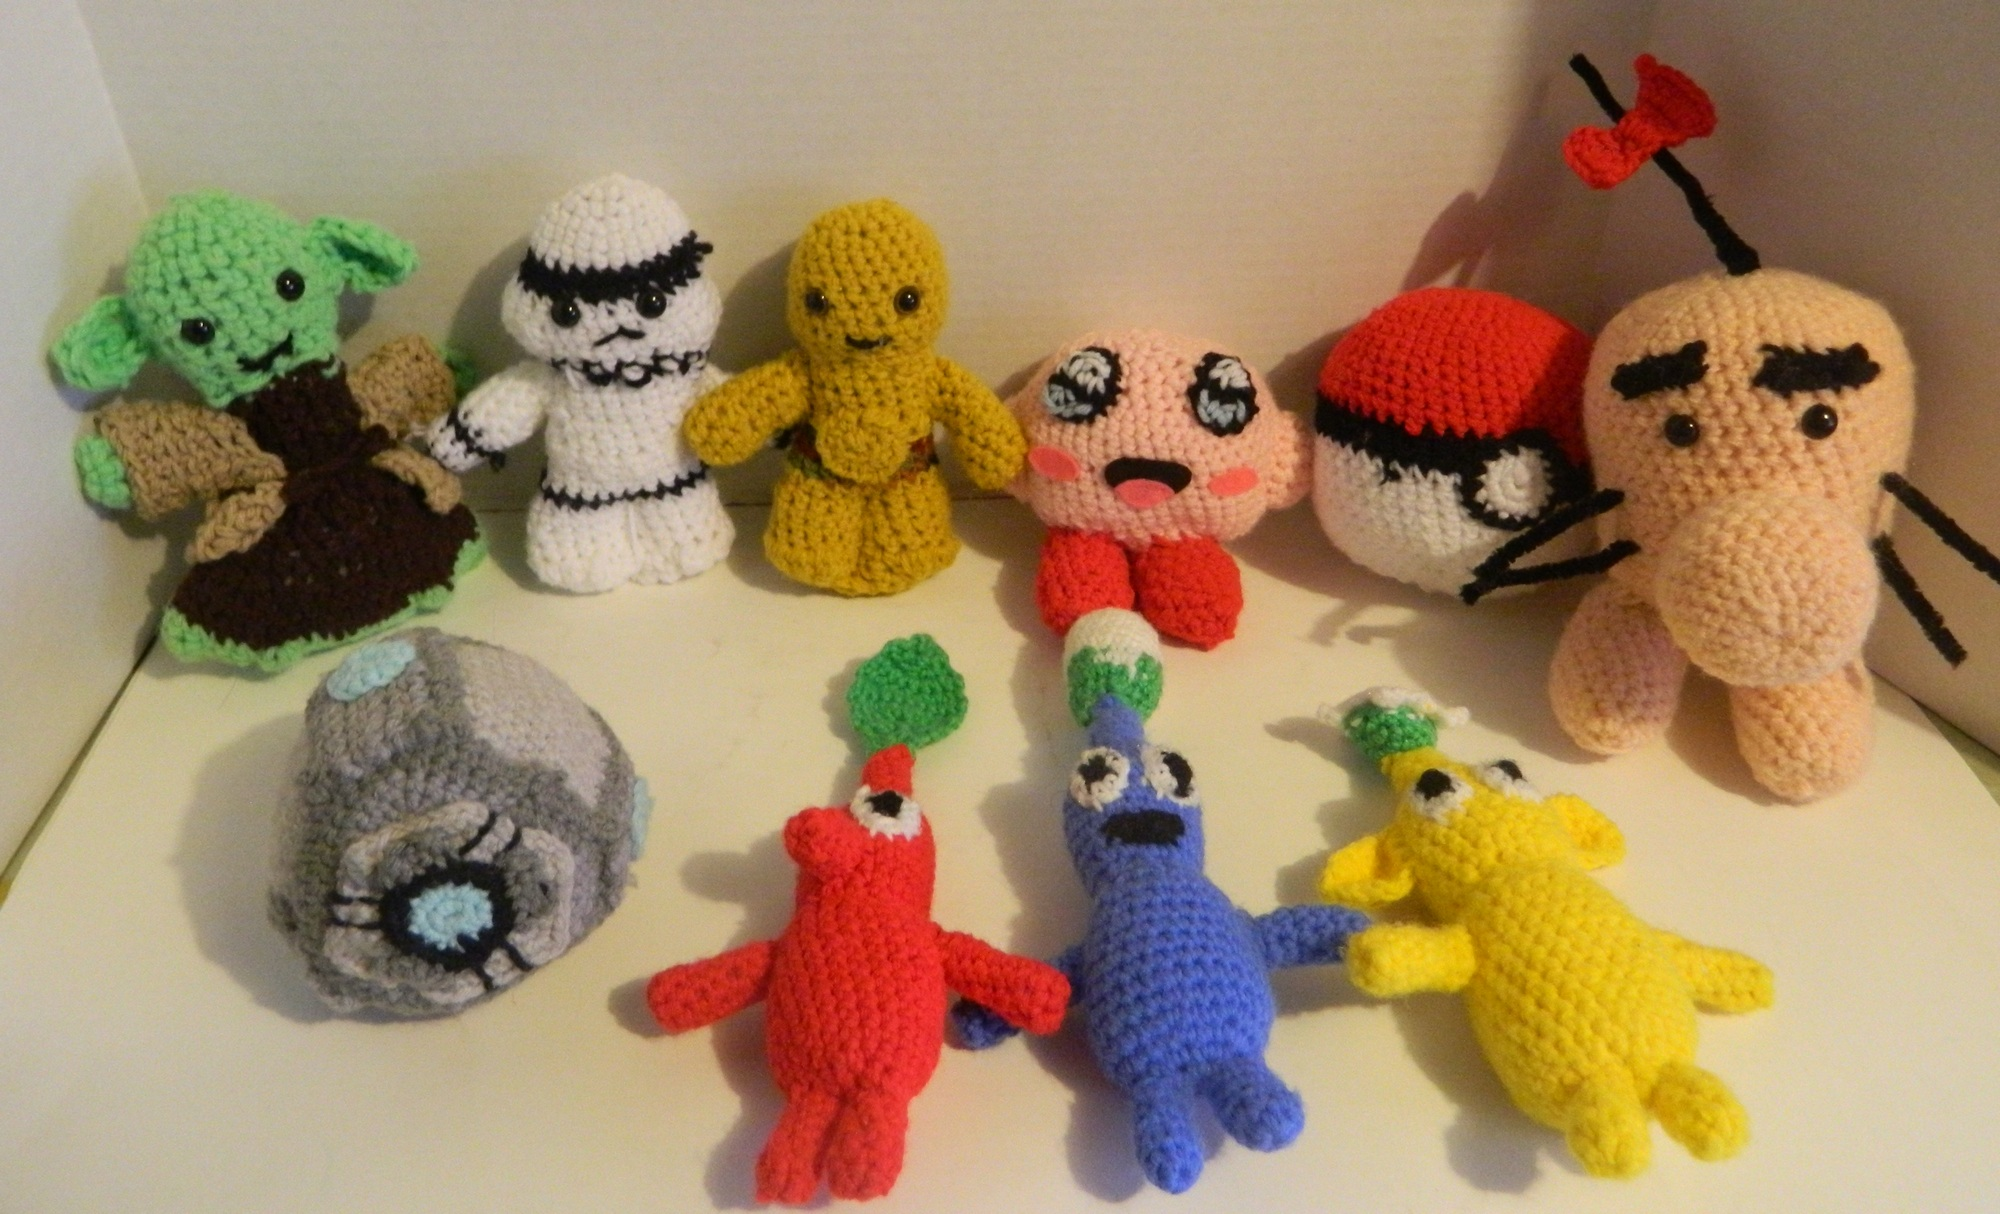 Geeky Crochet Creations